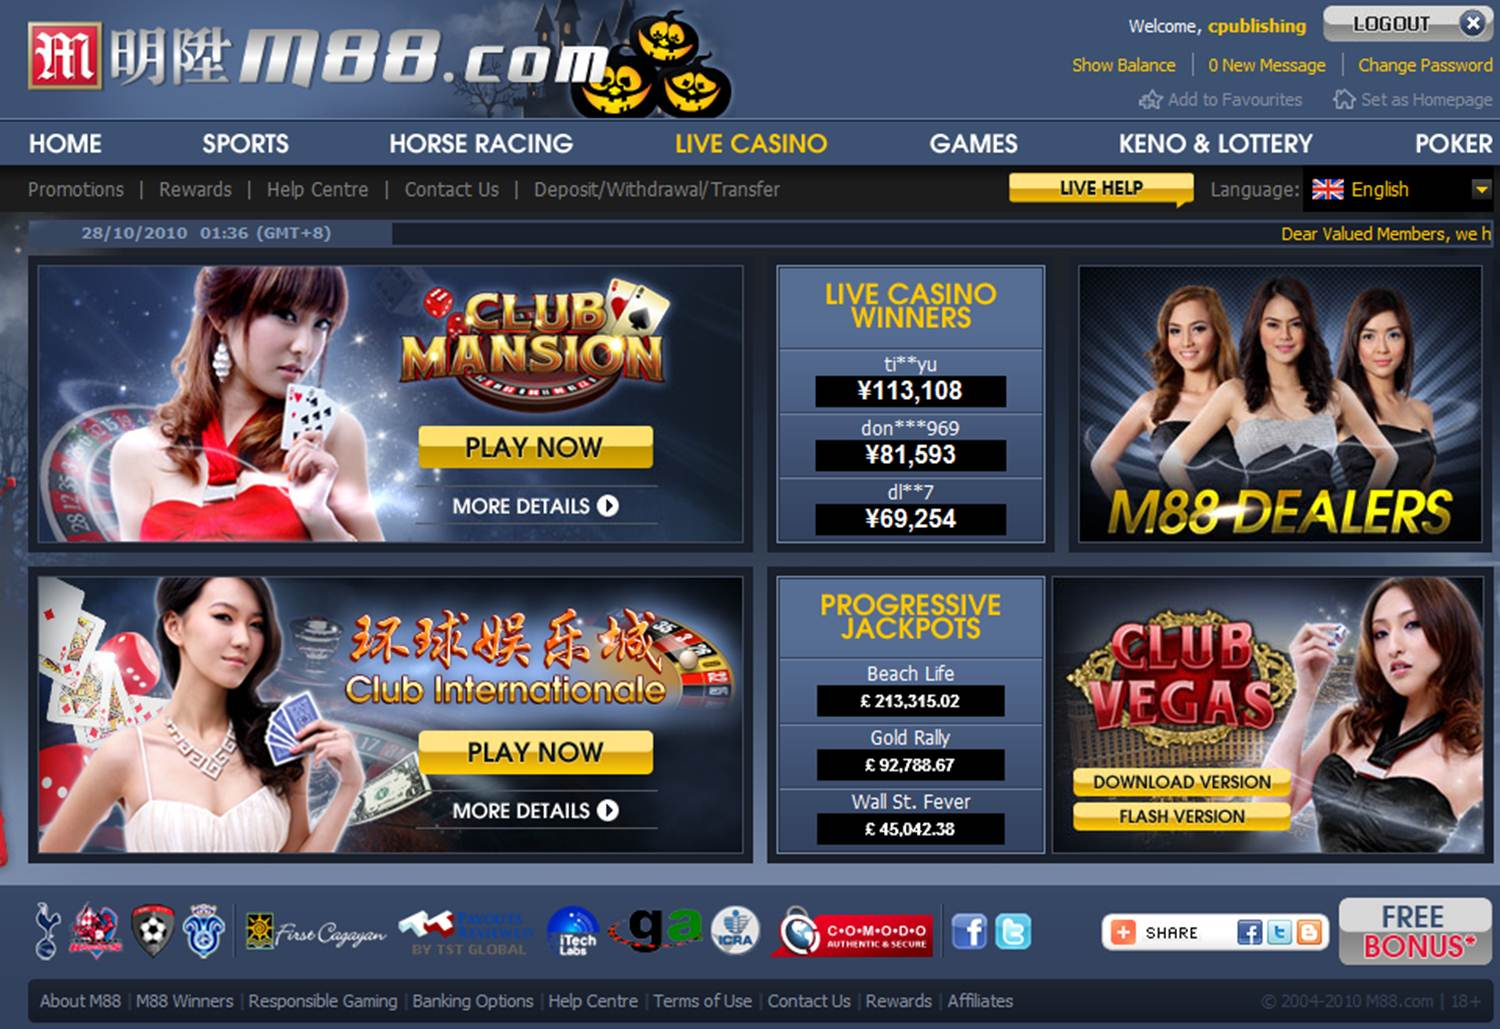 With M88, we still have an effective vision to supply all of our customers m88 game entertainment of great including exceptionally great value.  Great Choice We offer our clients our paid members with M88 LIVE SPORTS ENTERTAINMENT, PLAY LIVE CASINO ONLINE, ARE LOCATED LOTTERY and KENO, P2P TEXAS HOLD'EM. https://www.m88u.com